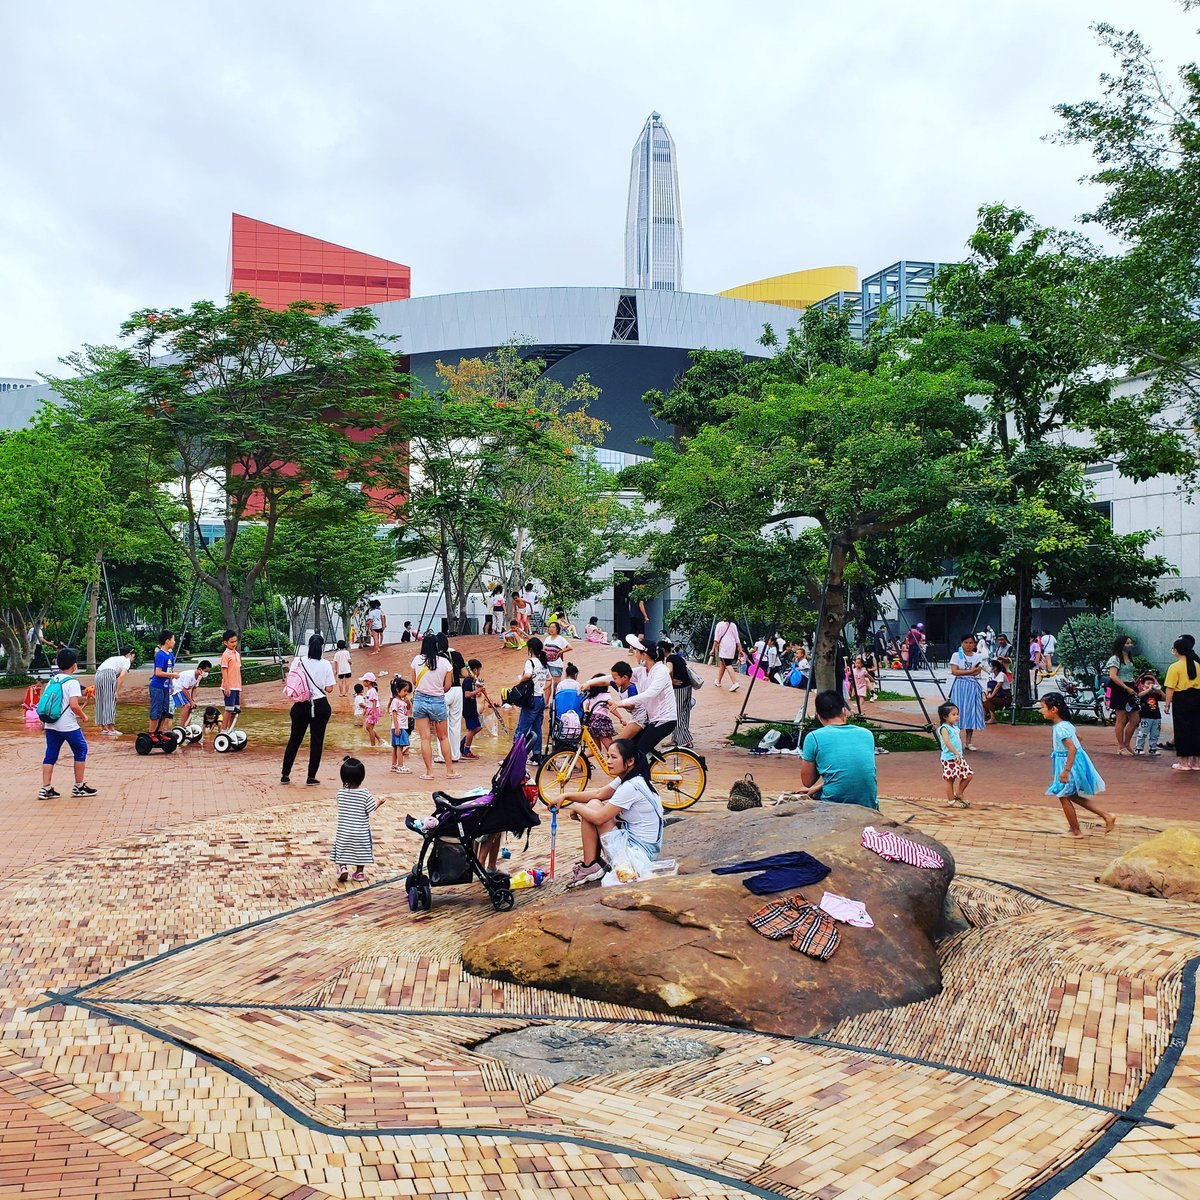 A Happy Children's Day in Shenzhen yesterday with a lot of children playing outside and in the malls. Today, many kindergartens are opened again welcoming the youngest students back after a nearly 5 months long holiday.  #children #childrensday #happy #kids #backtoschool #COVID19